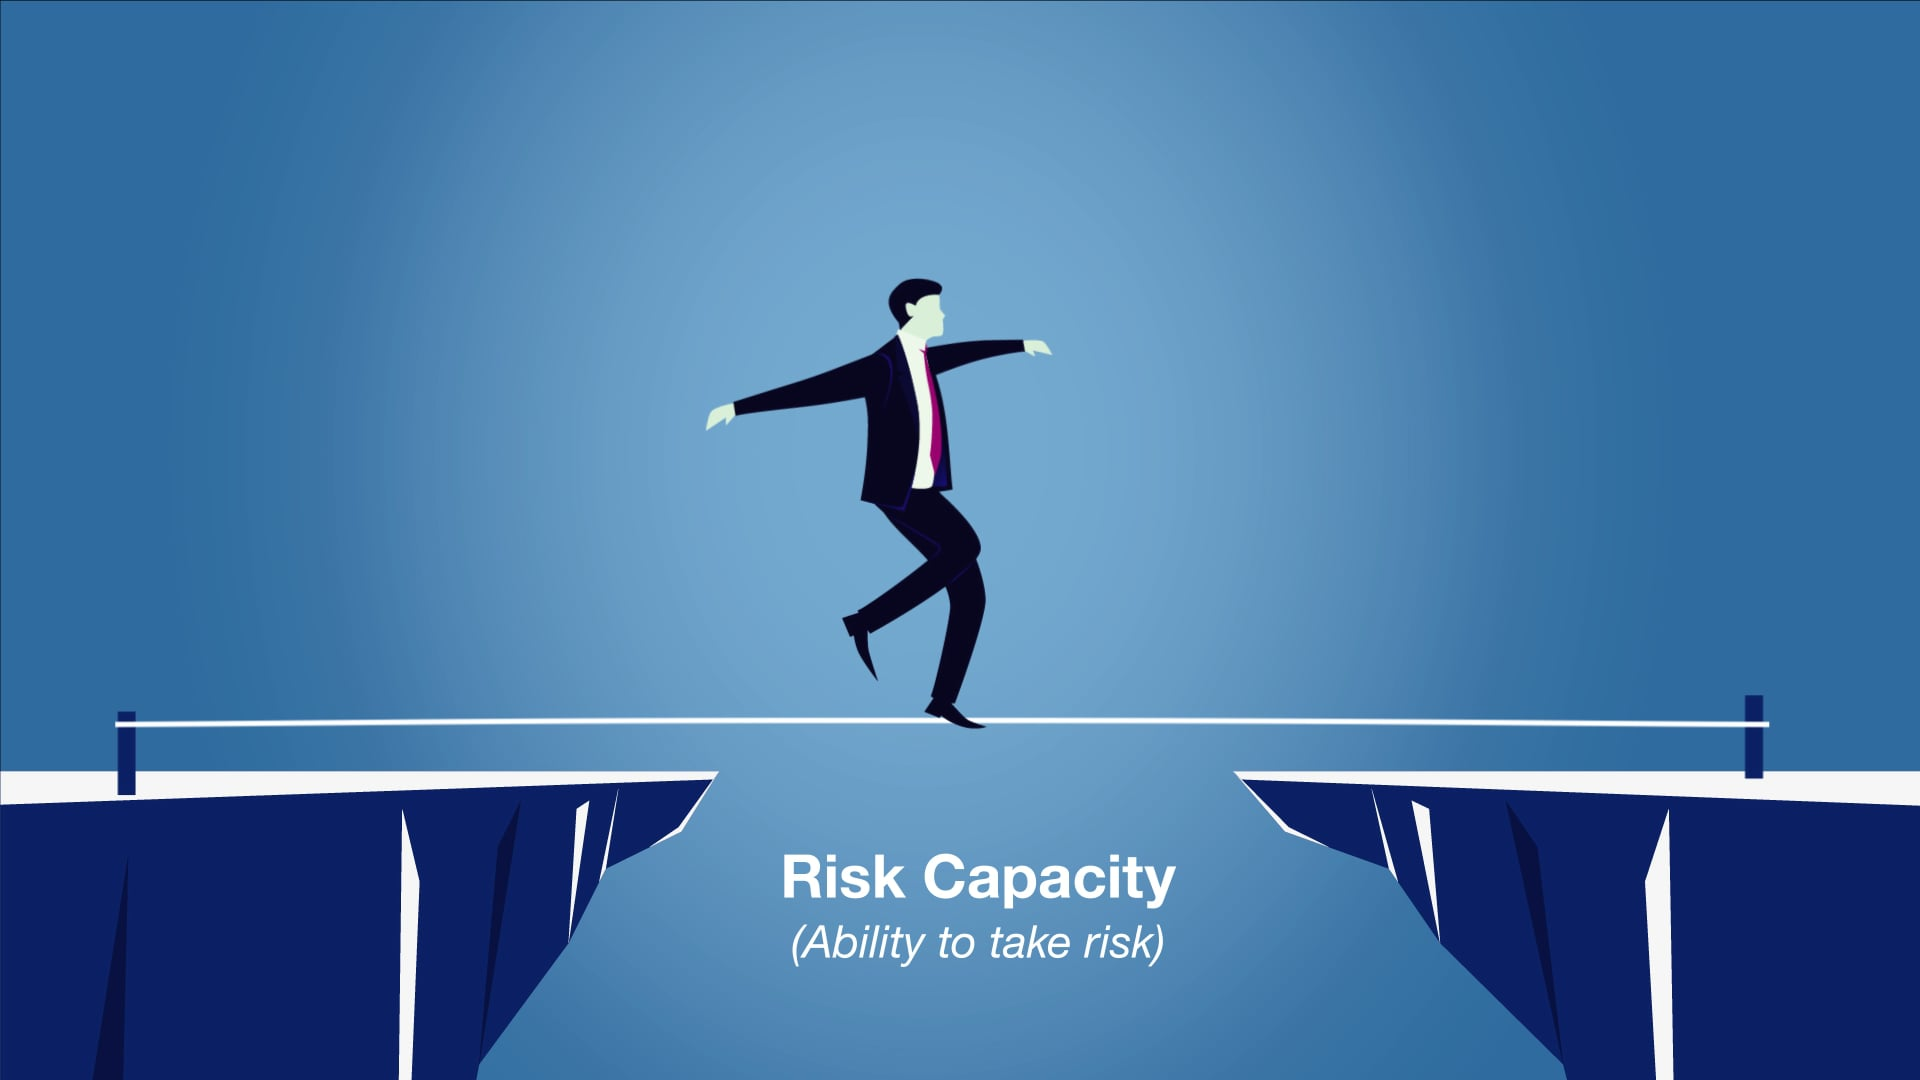 What are the different types of risk profiles investors can be classified into?